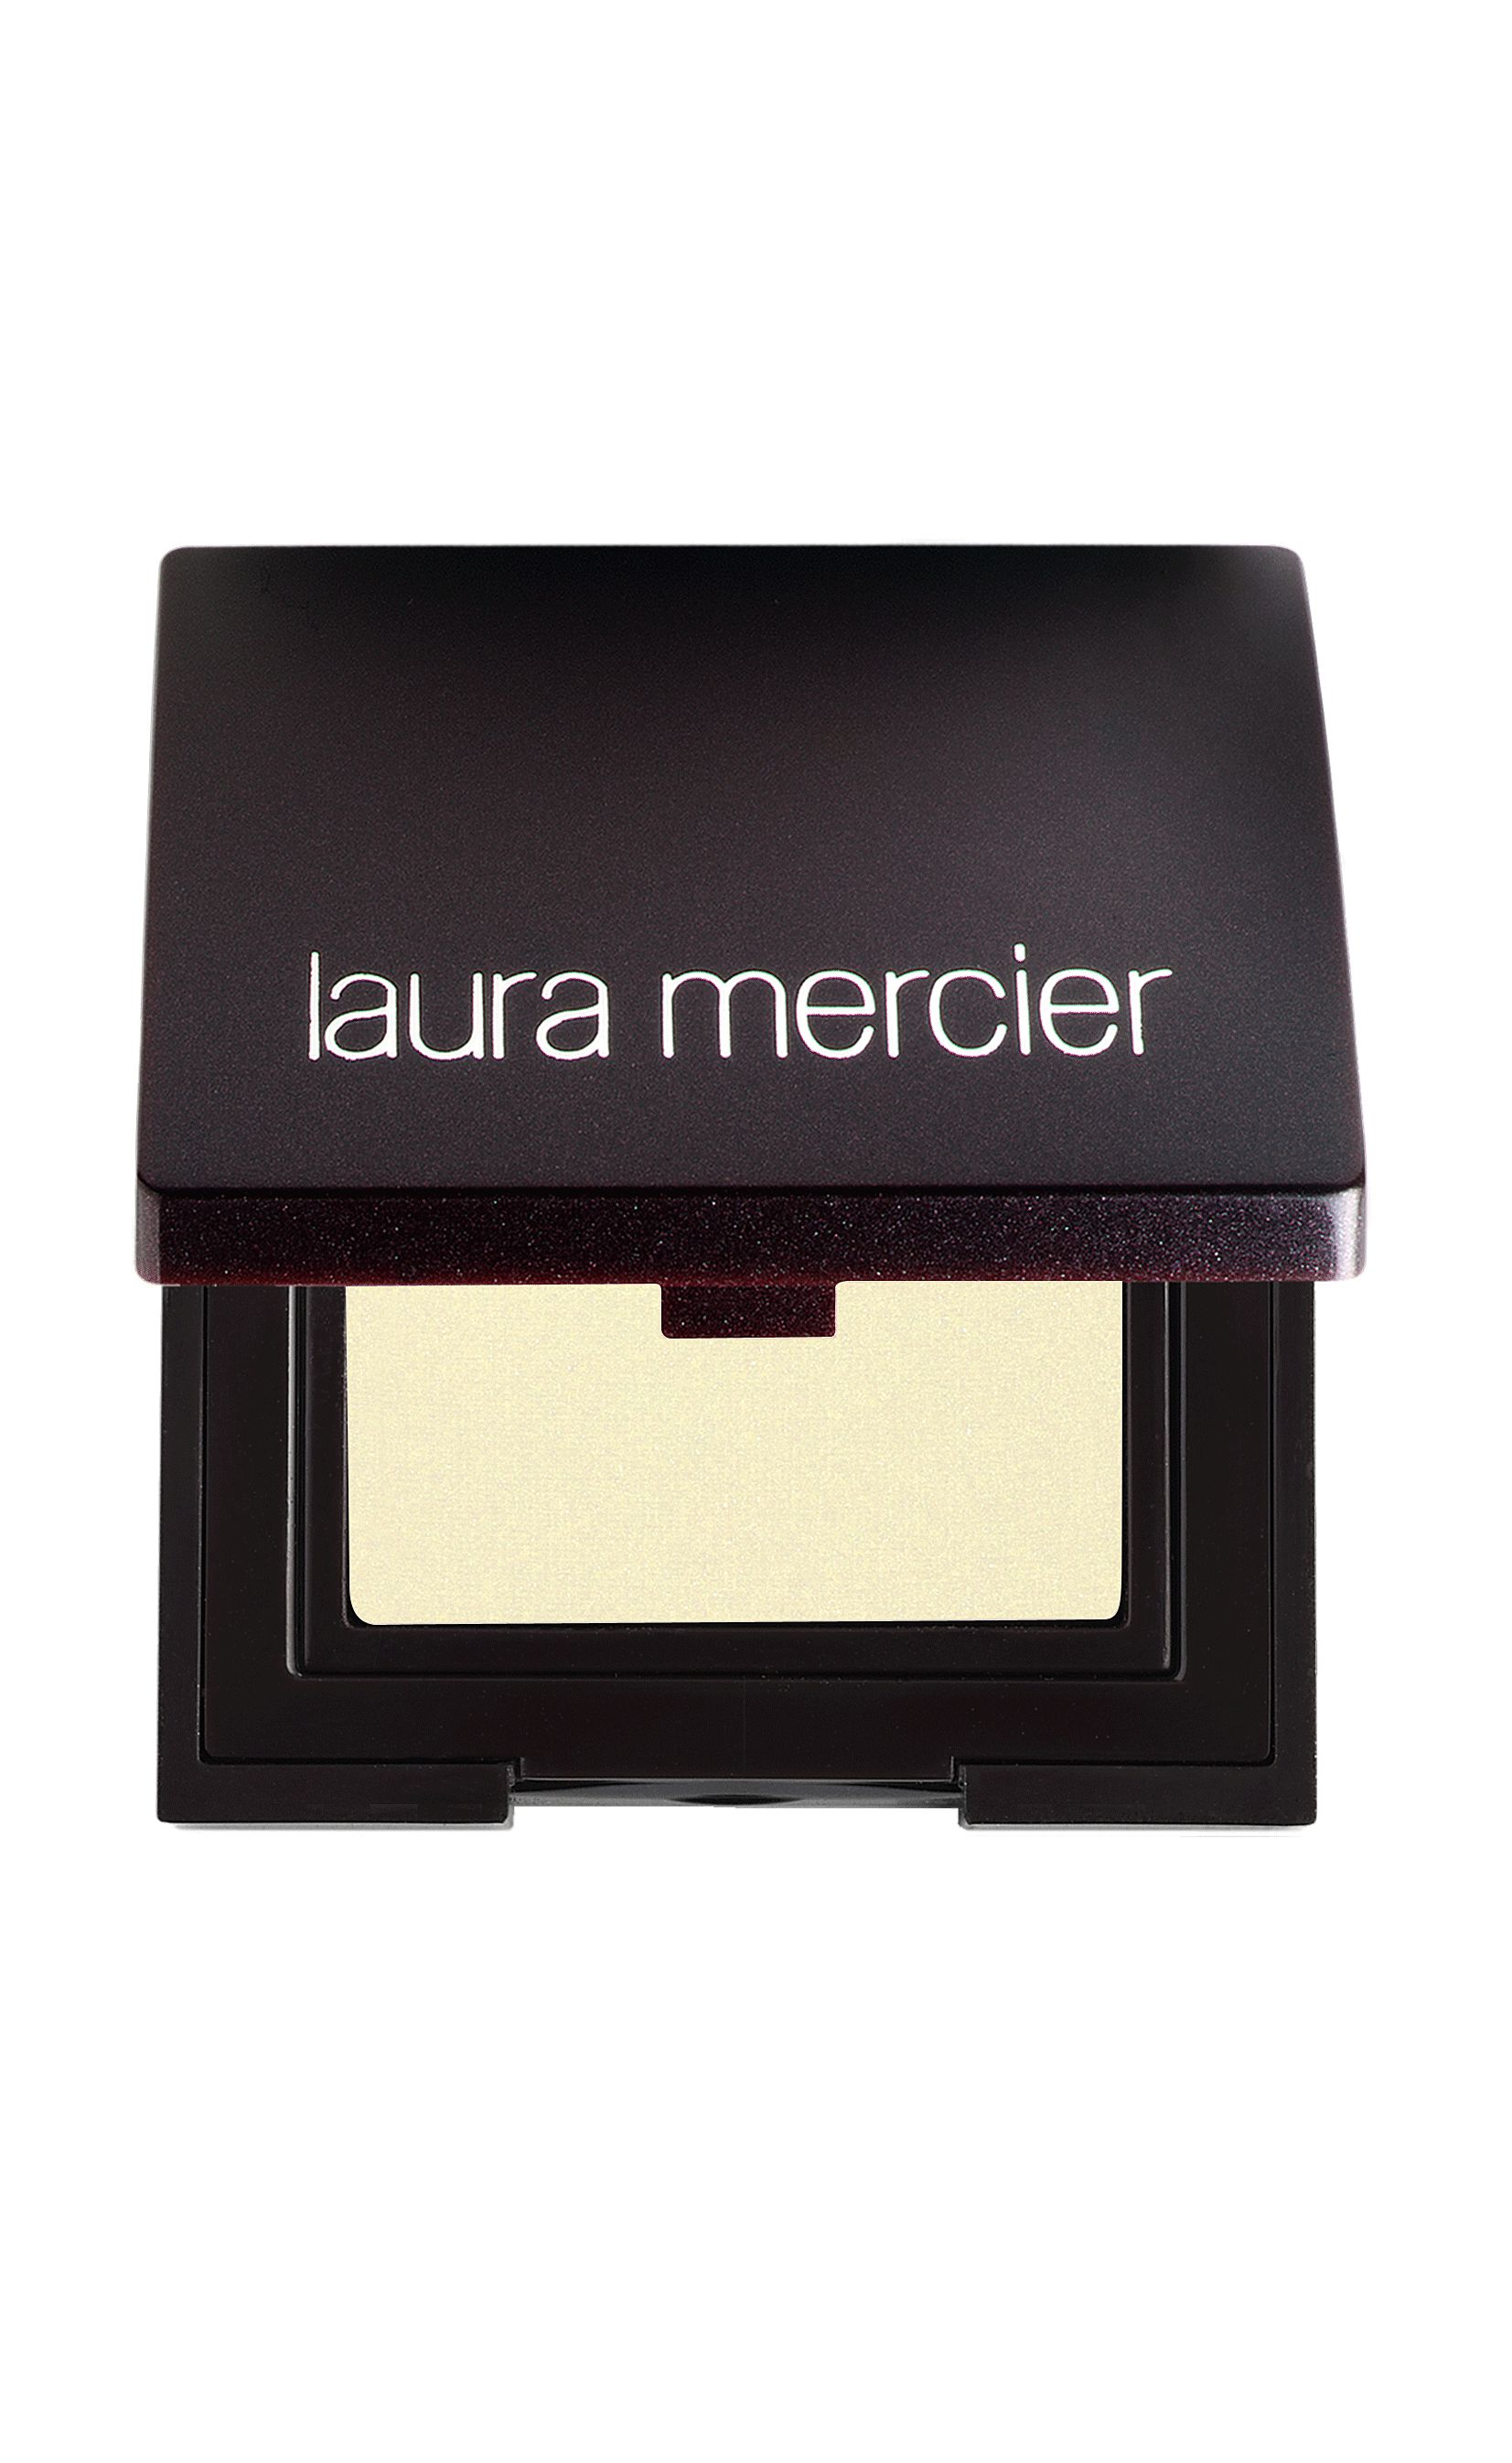 Laura Mercier Sateen Eye Colour Gold Dust product image